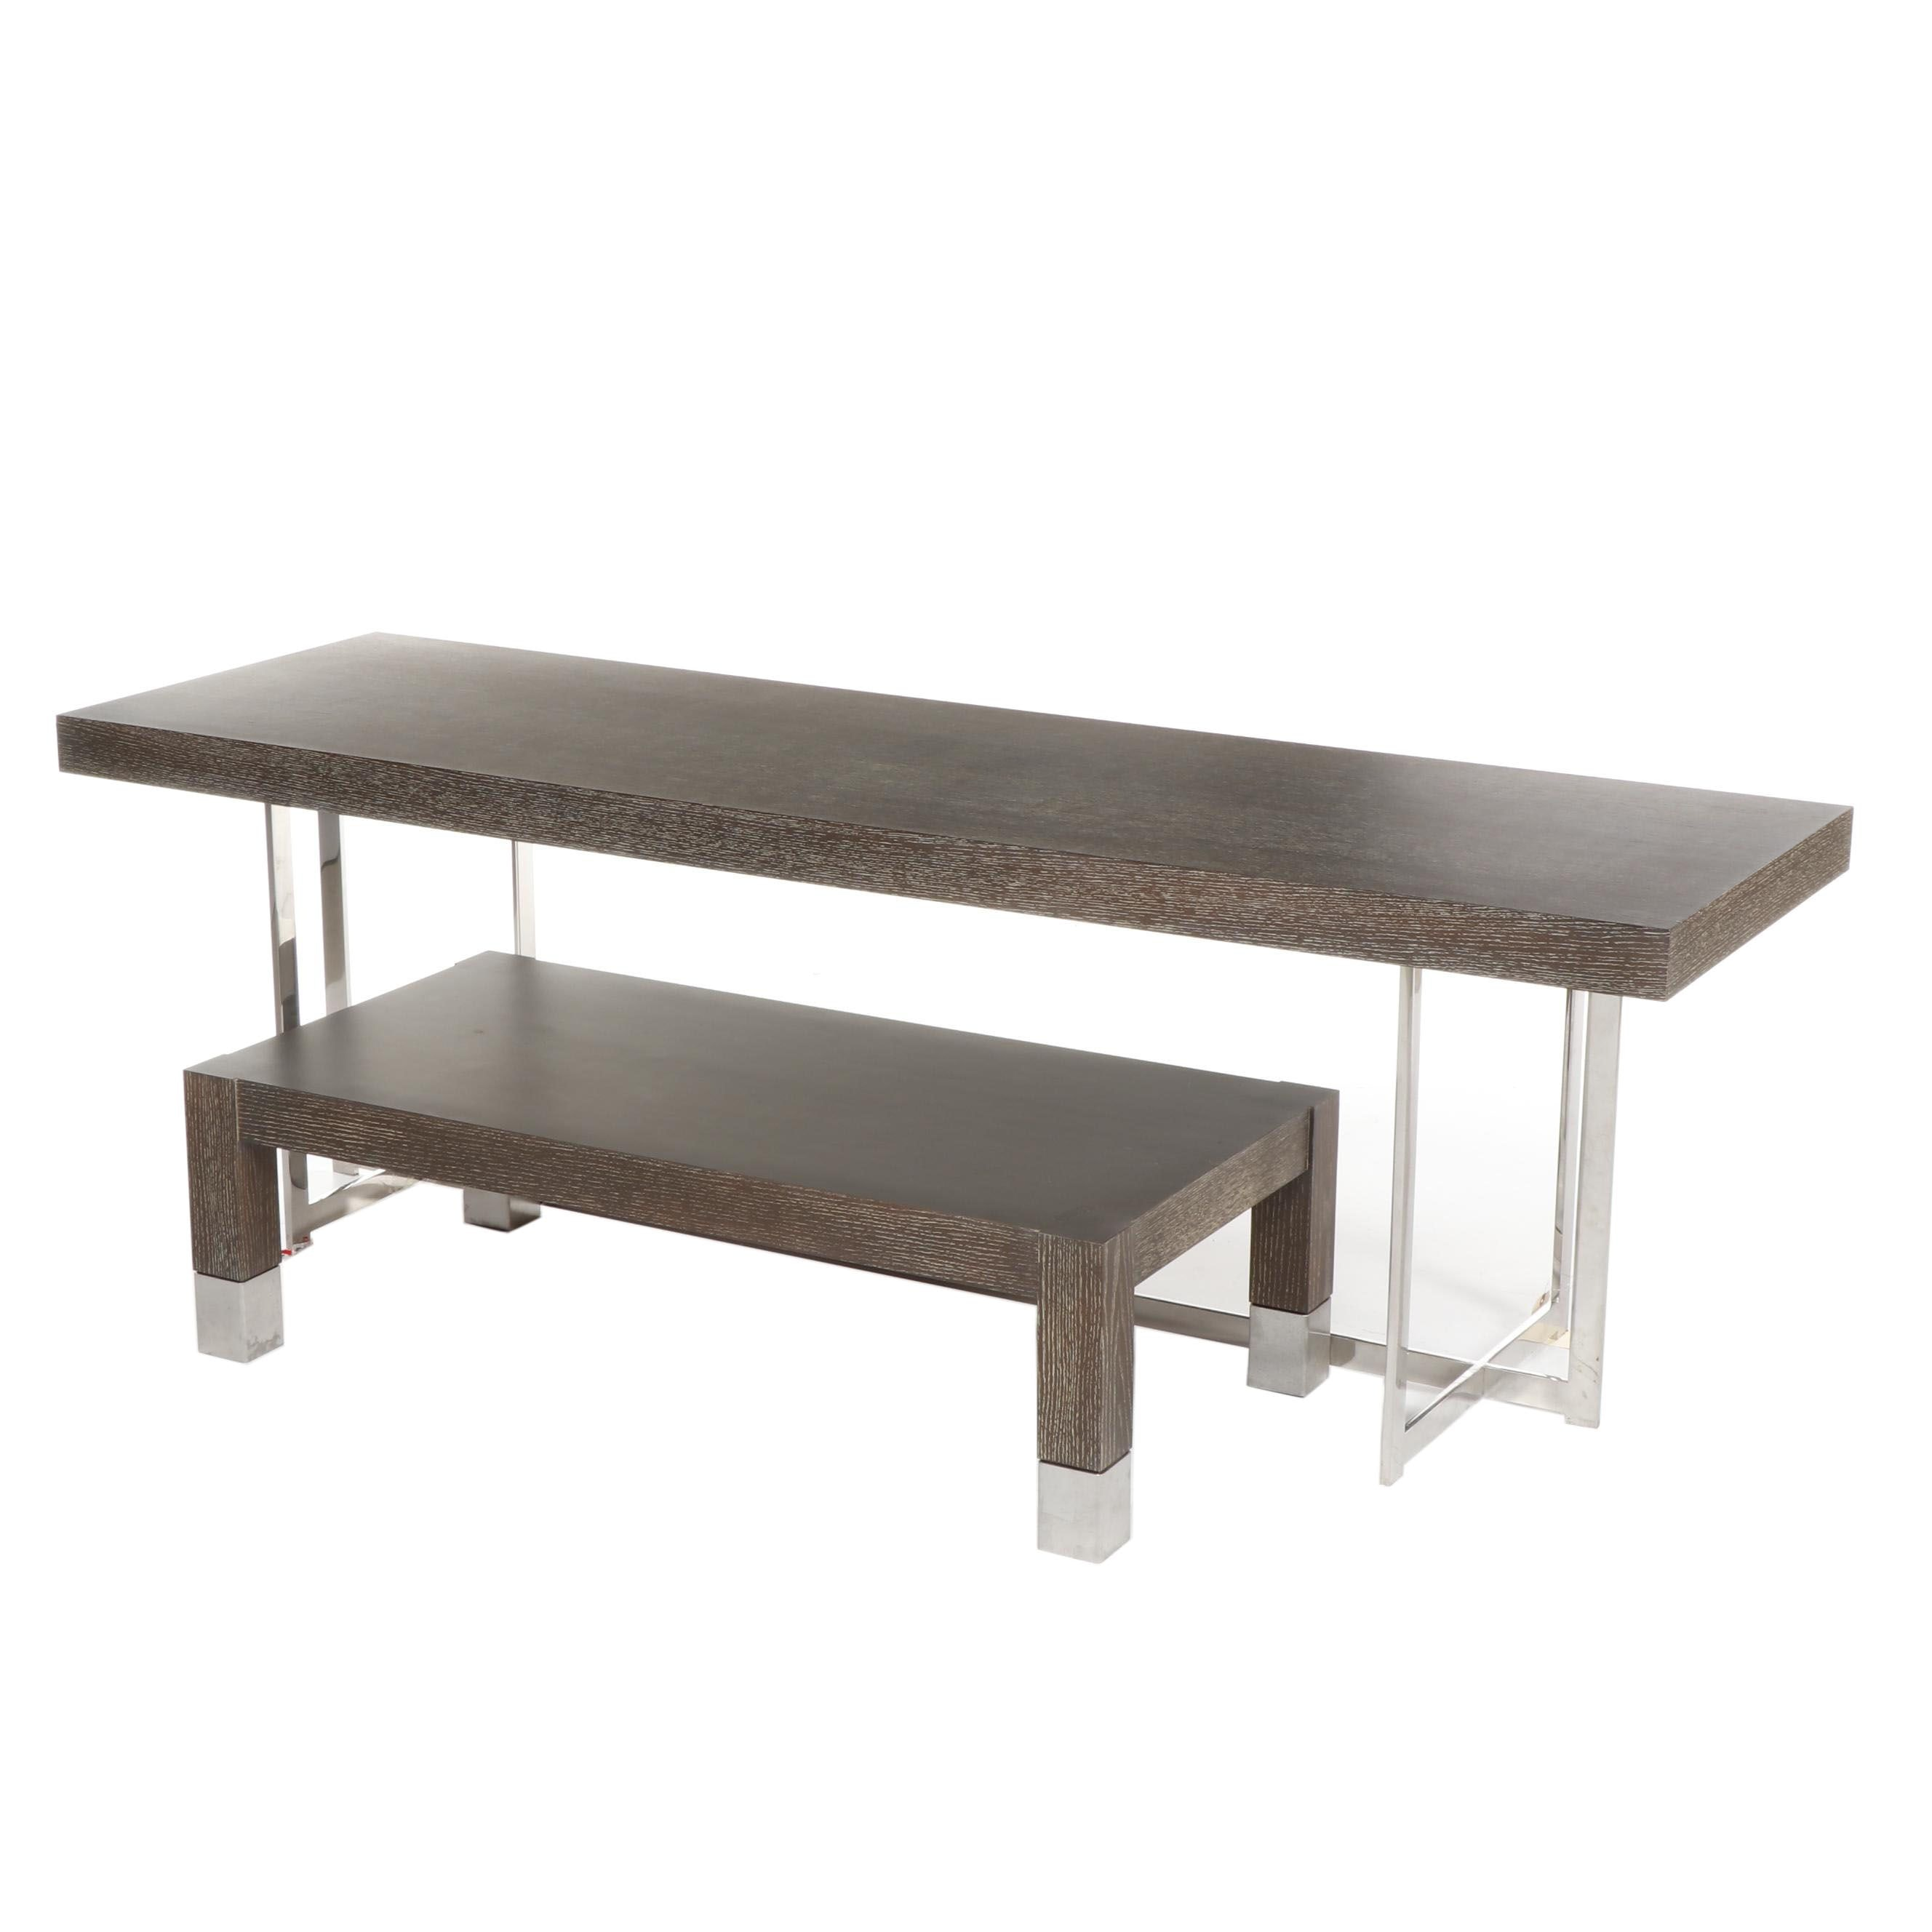 Contemporary Cerused Oak and Metal Table with Bench